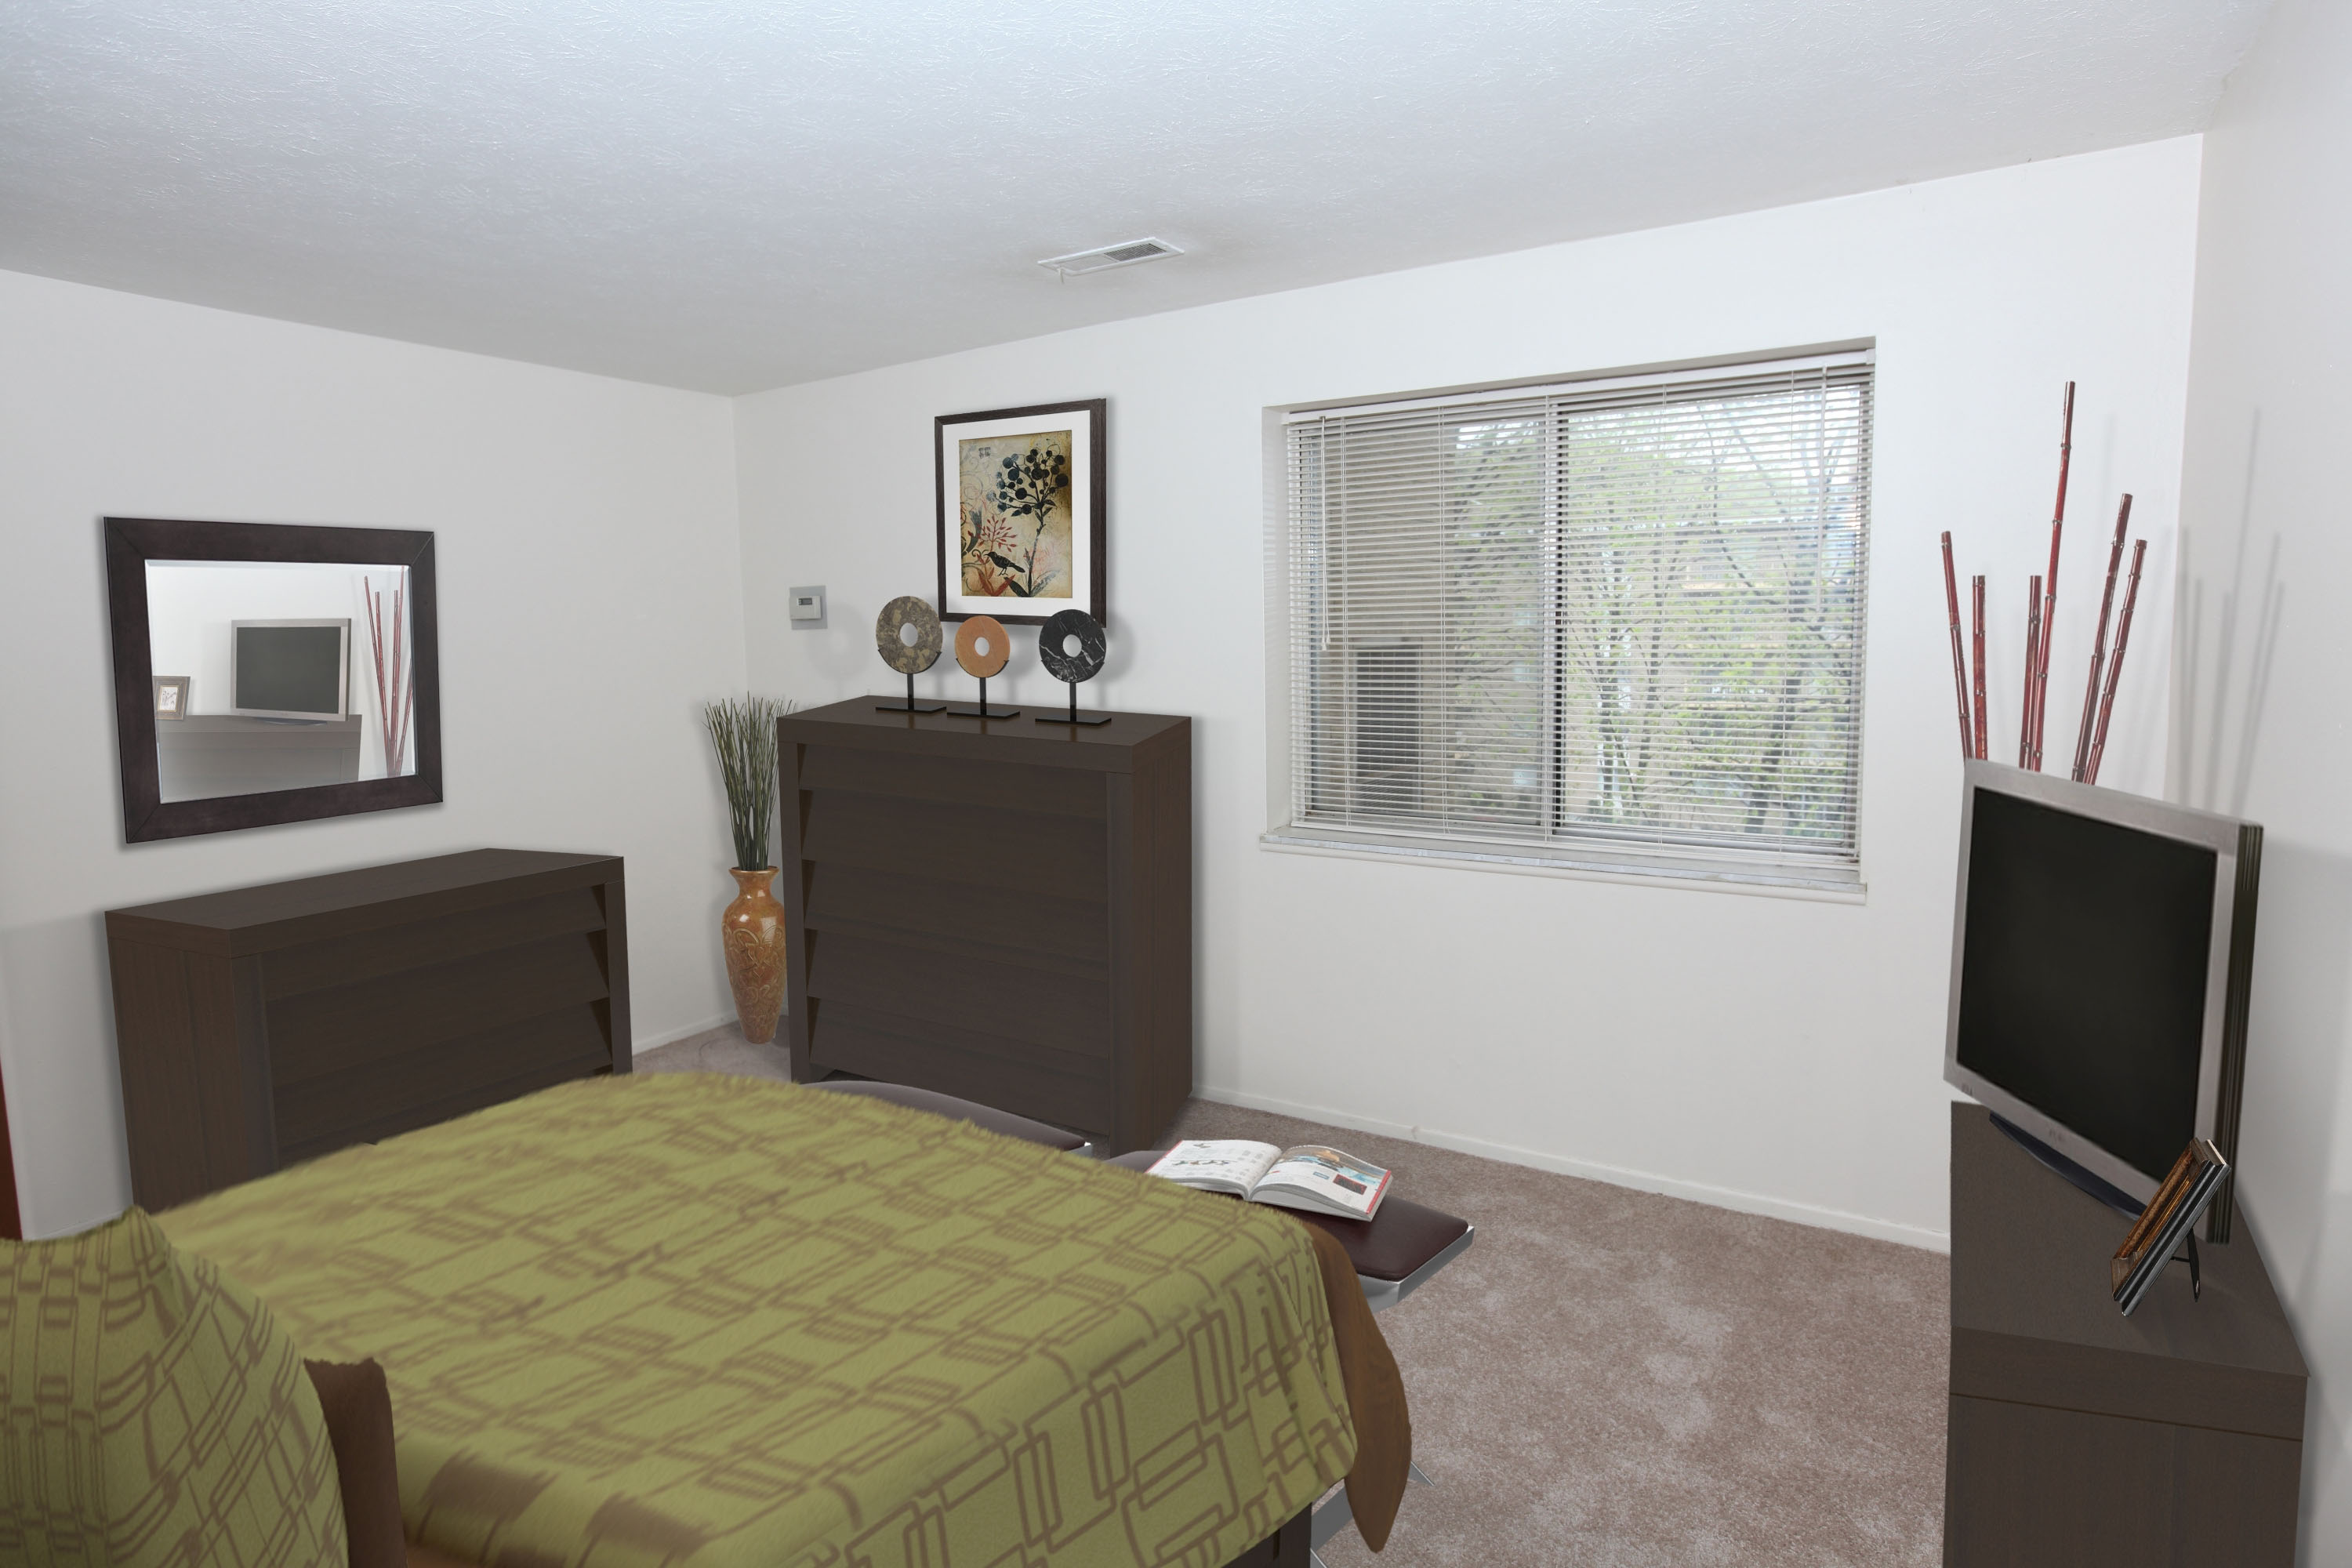 1B Bedroom Furnished at the Greenridge on Euclid Apartments in Euclid, OH